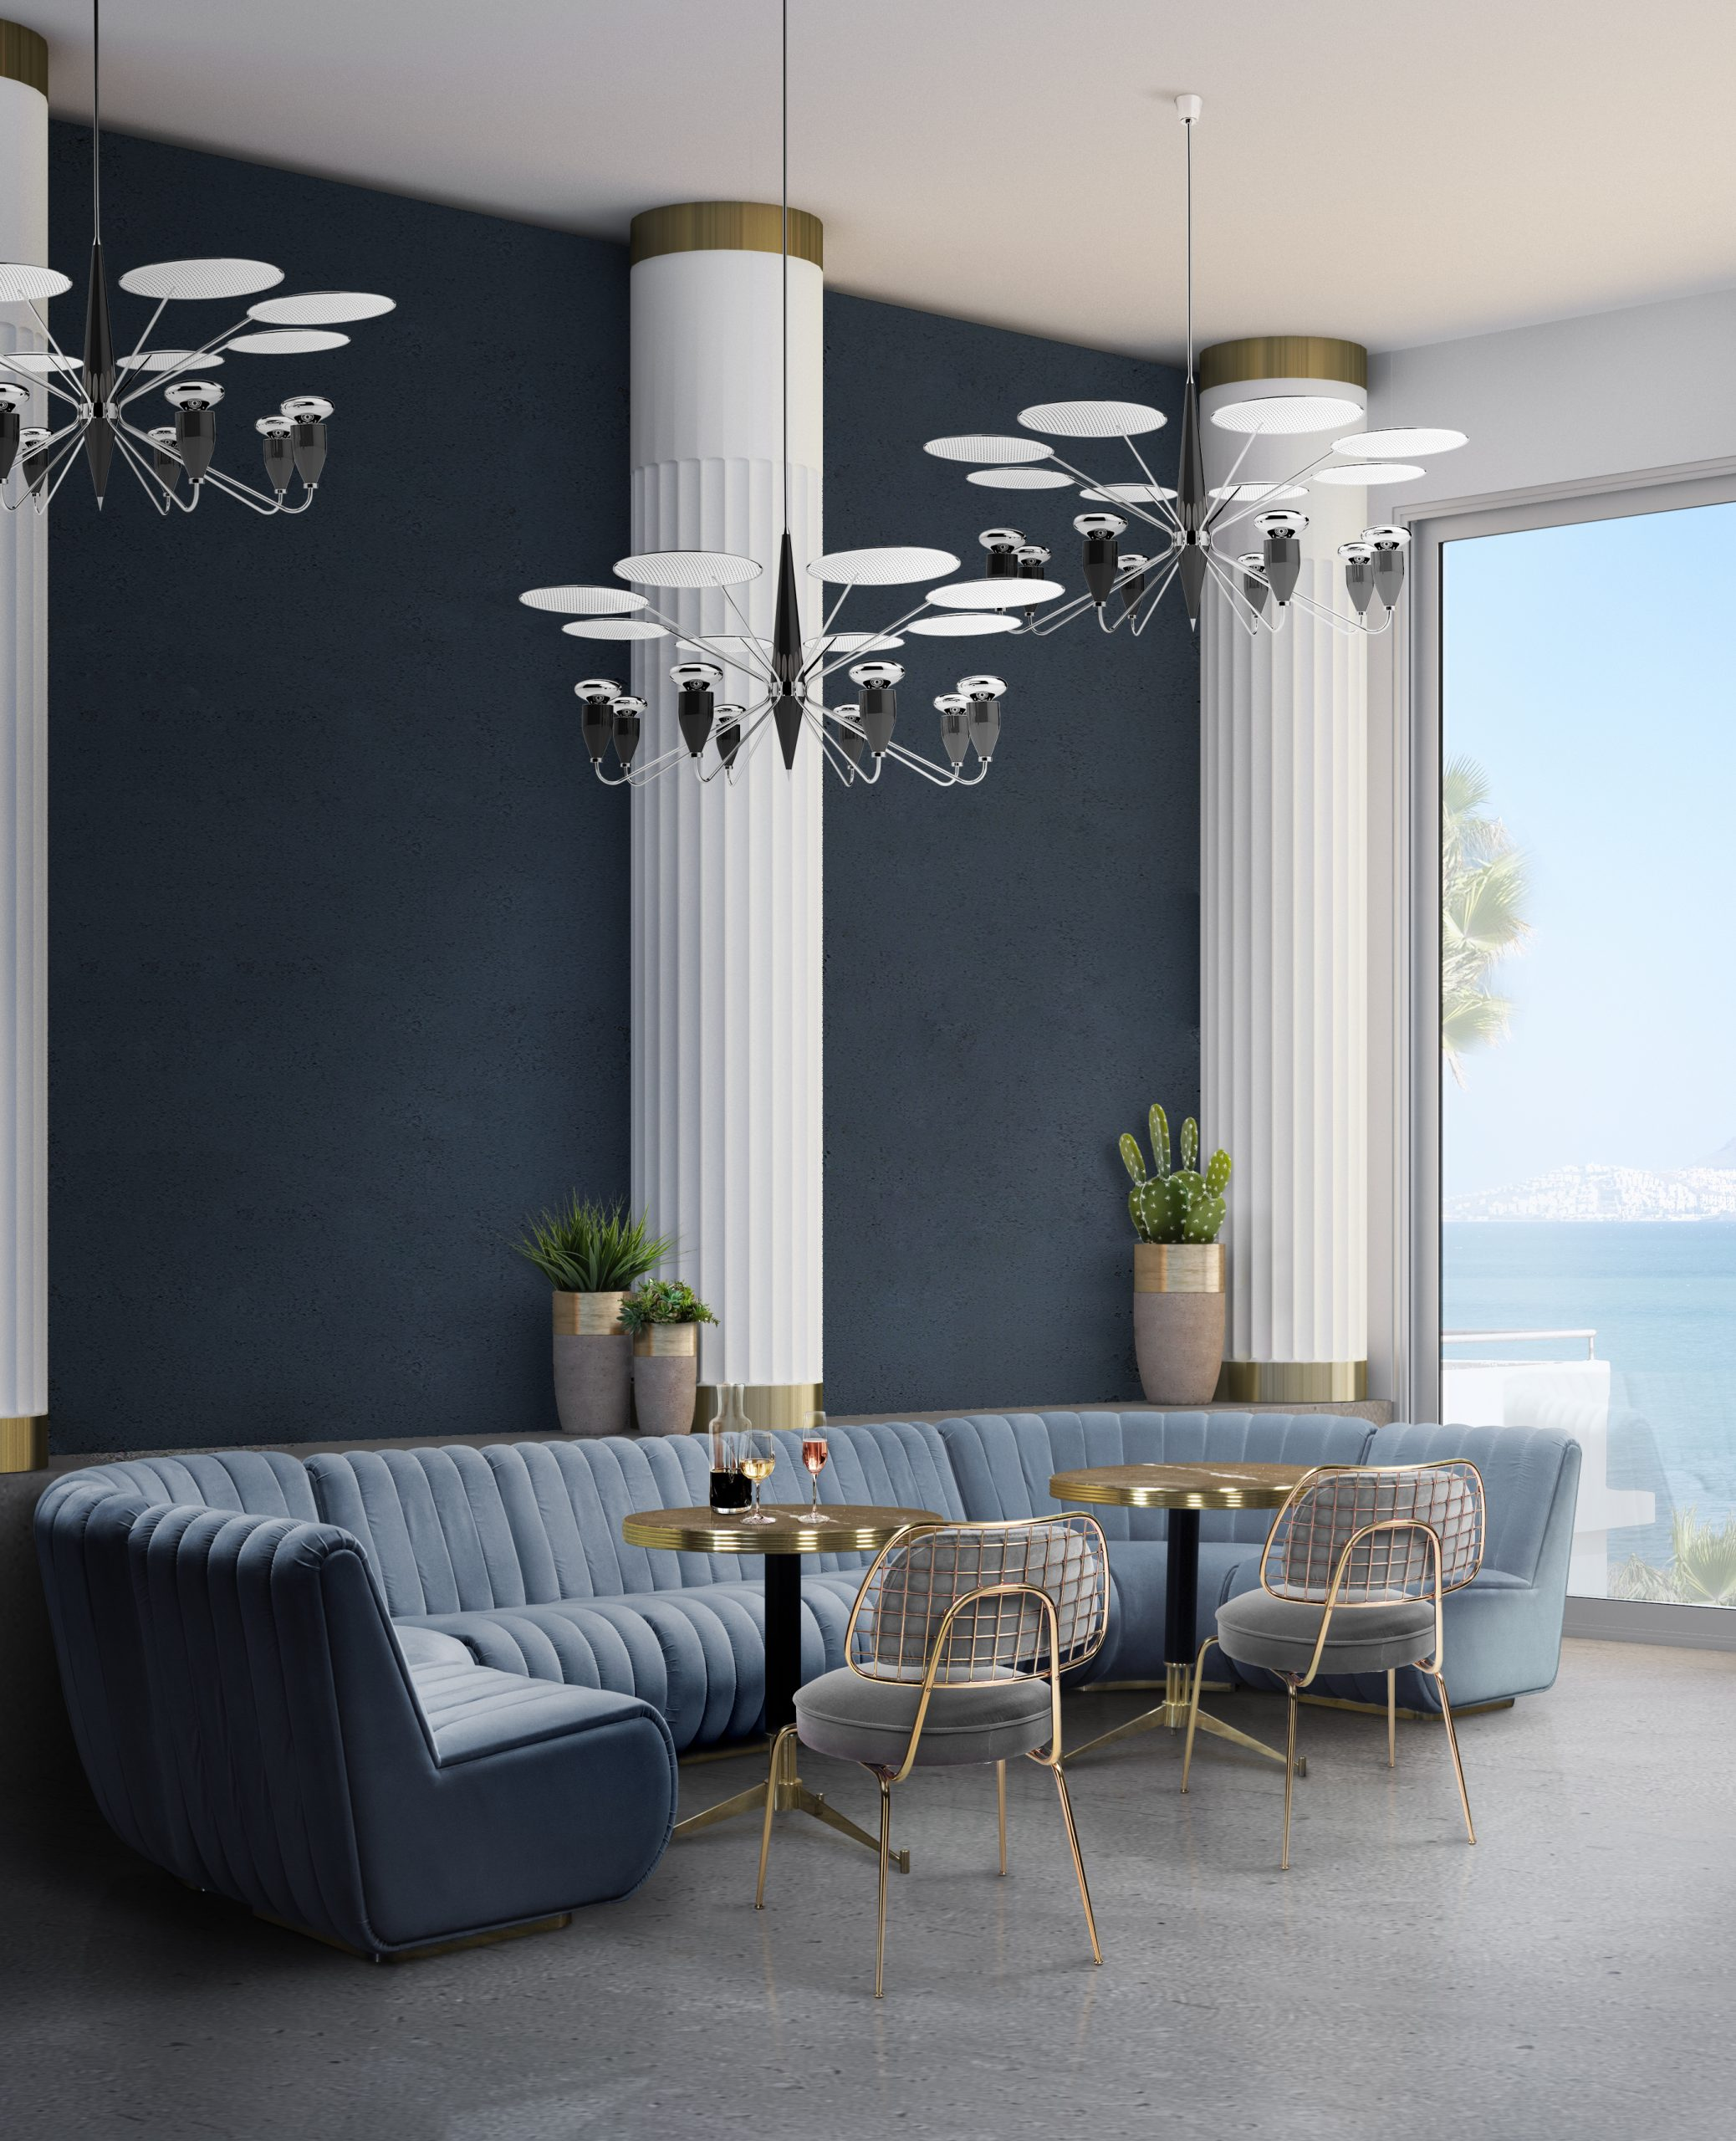 10 Soothing Blue Ambiances Ideas We Can't Wait To Try! blue ambiances 10 Soothing Blue Ambiances Ideas We Can't Wait To Try! 7 scaled